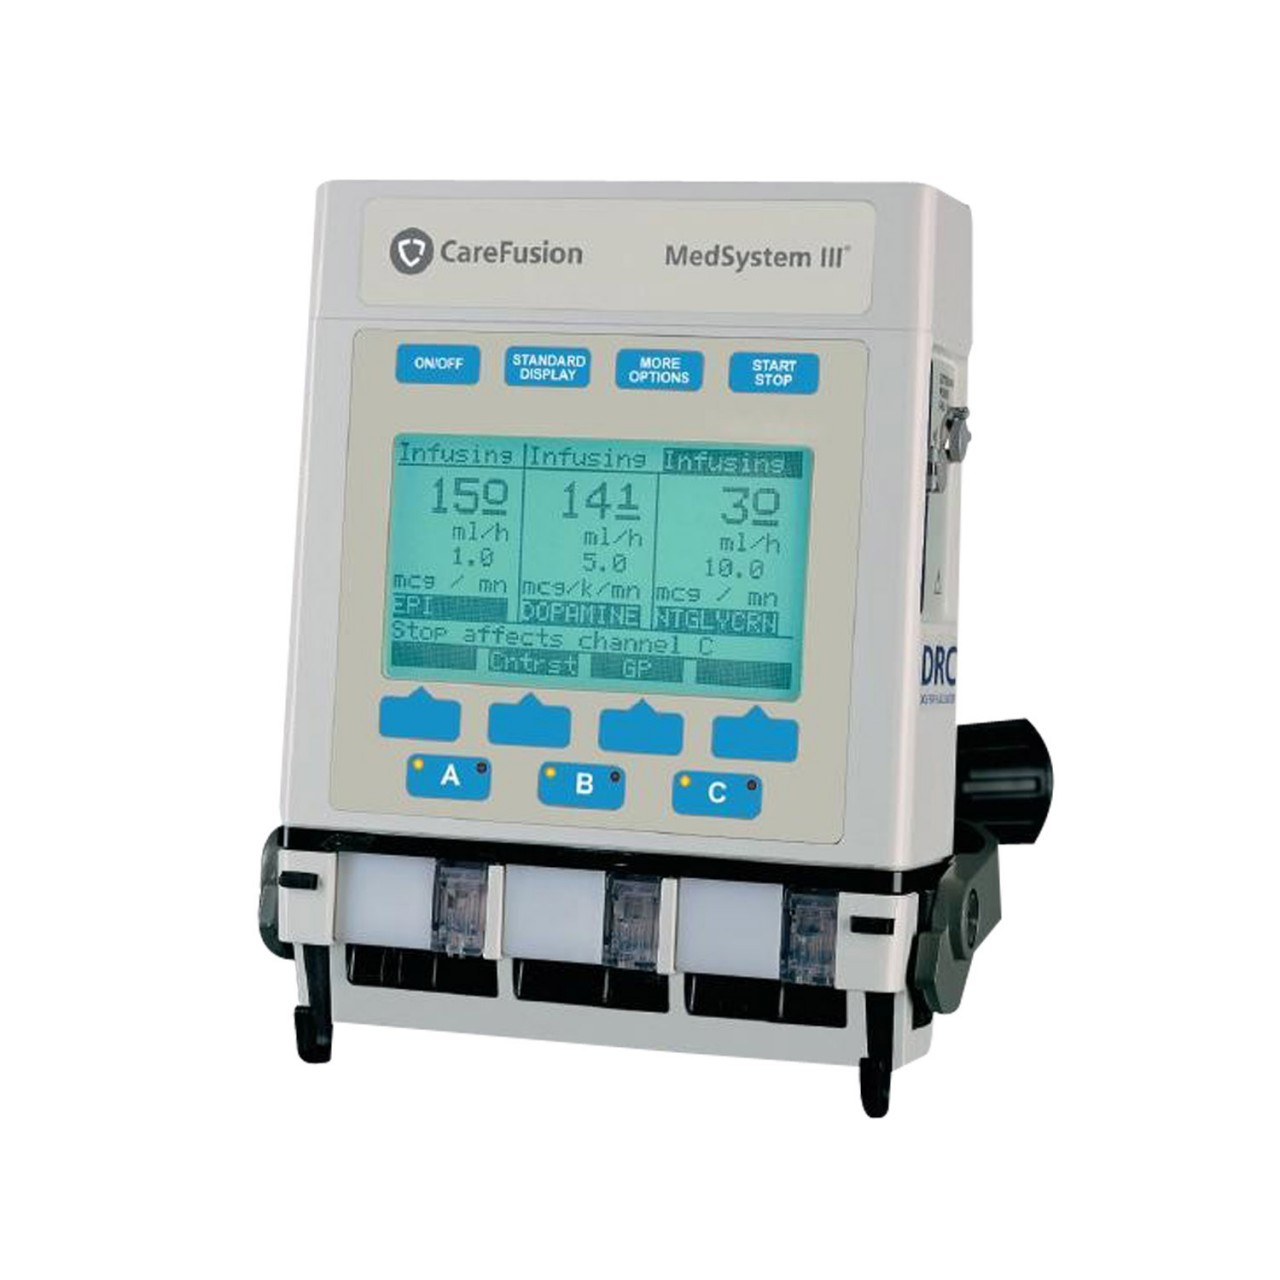 medsystem iii infusion pump manual